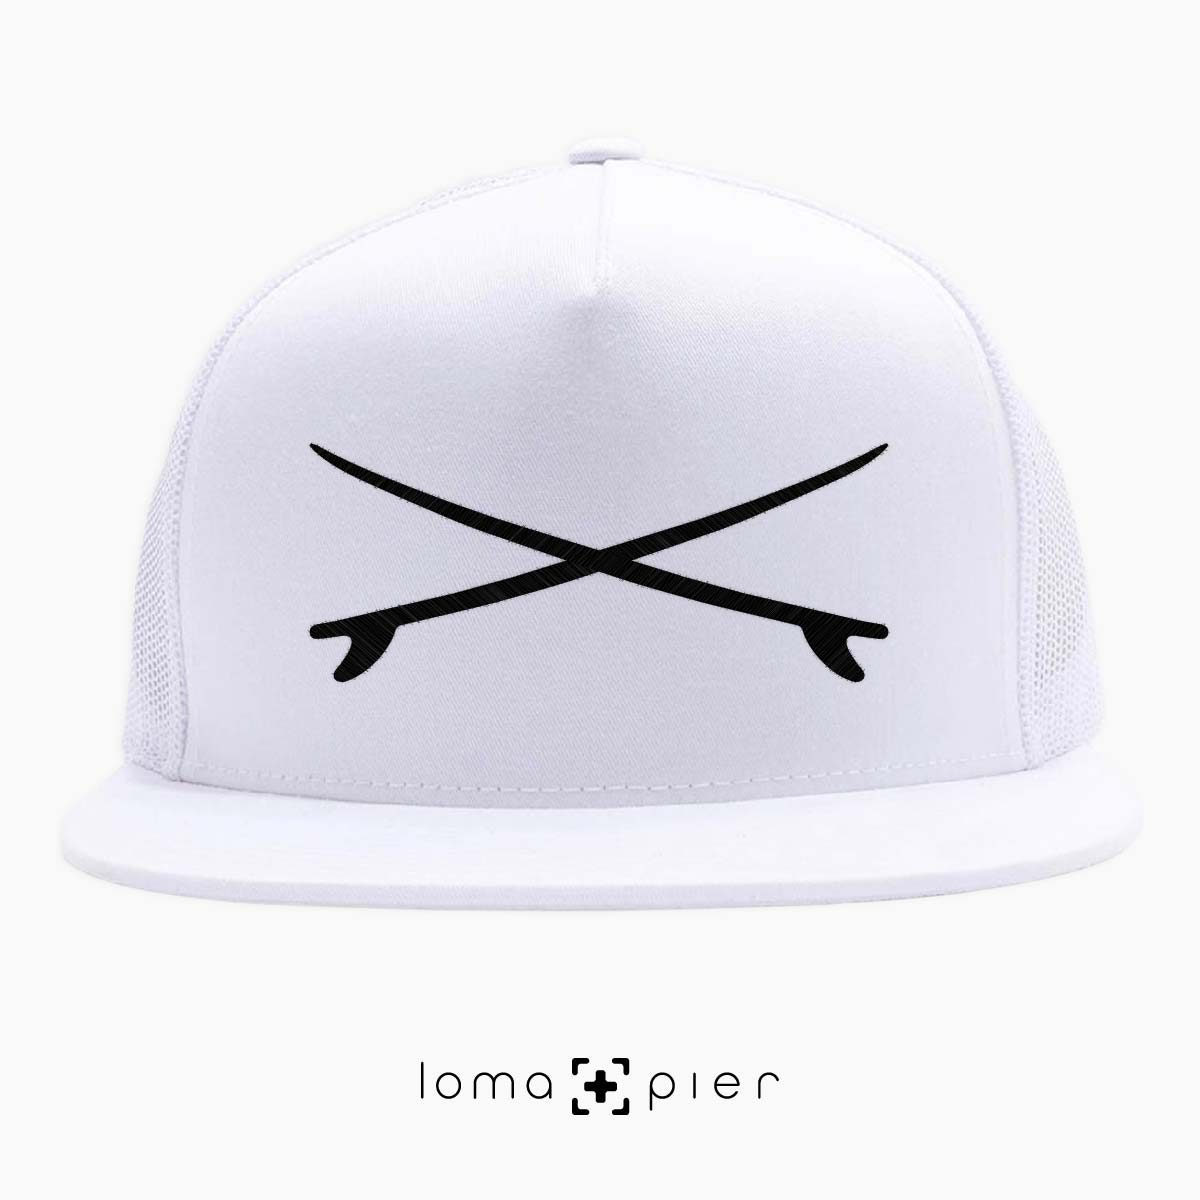 SURFBOARDS el porto beach netback hat in white by loma+pier hat store